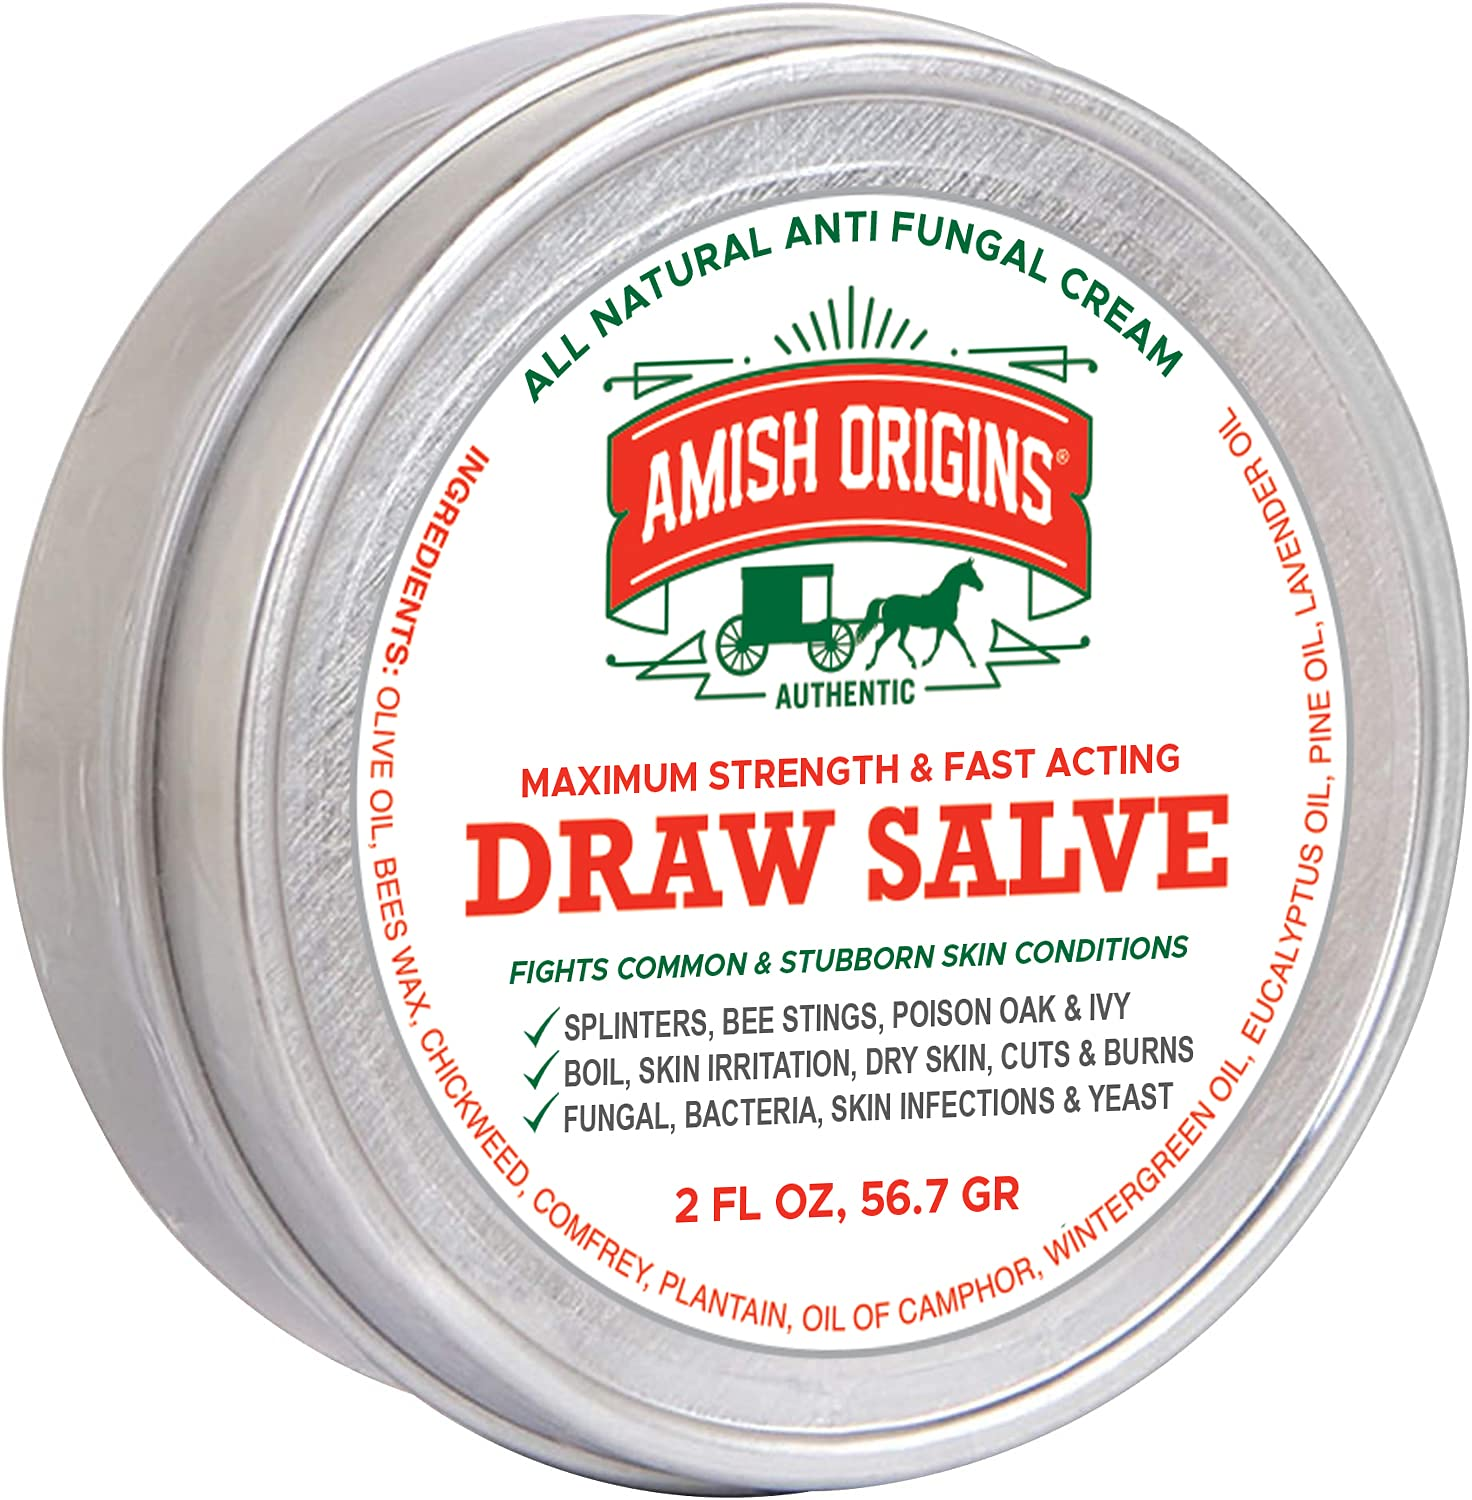 Drawing Salve Ointment 2 fl oz, Boil Treatment, Anti fungal Cream, Itch Cream, Draw Salve for Splinters, bee stings, Poison Oak & Ivy, Skin Irritation, Dry Skin, cuts & Burns, by Amish Origins